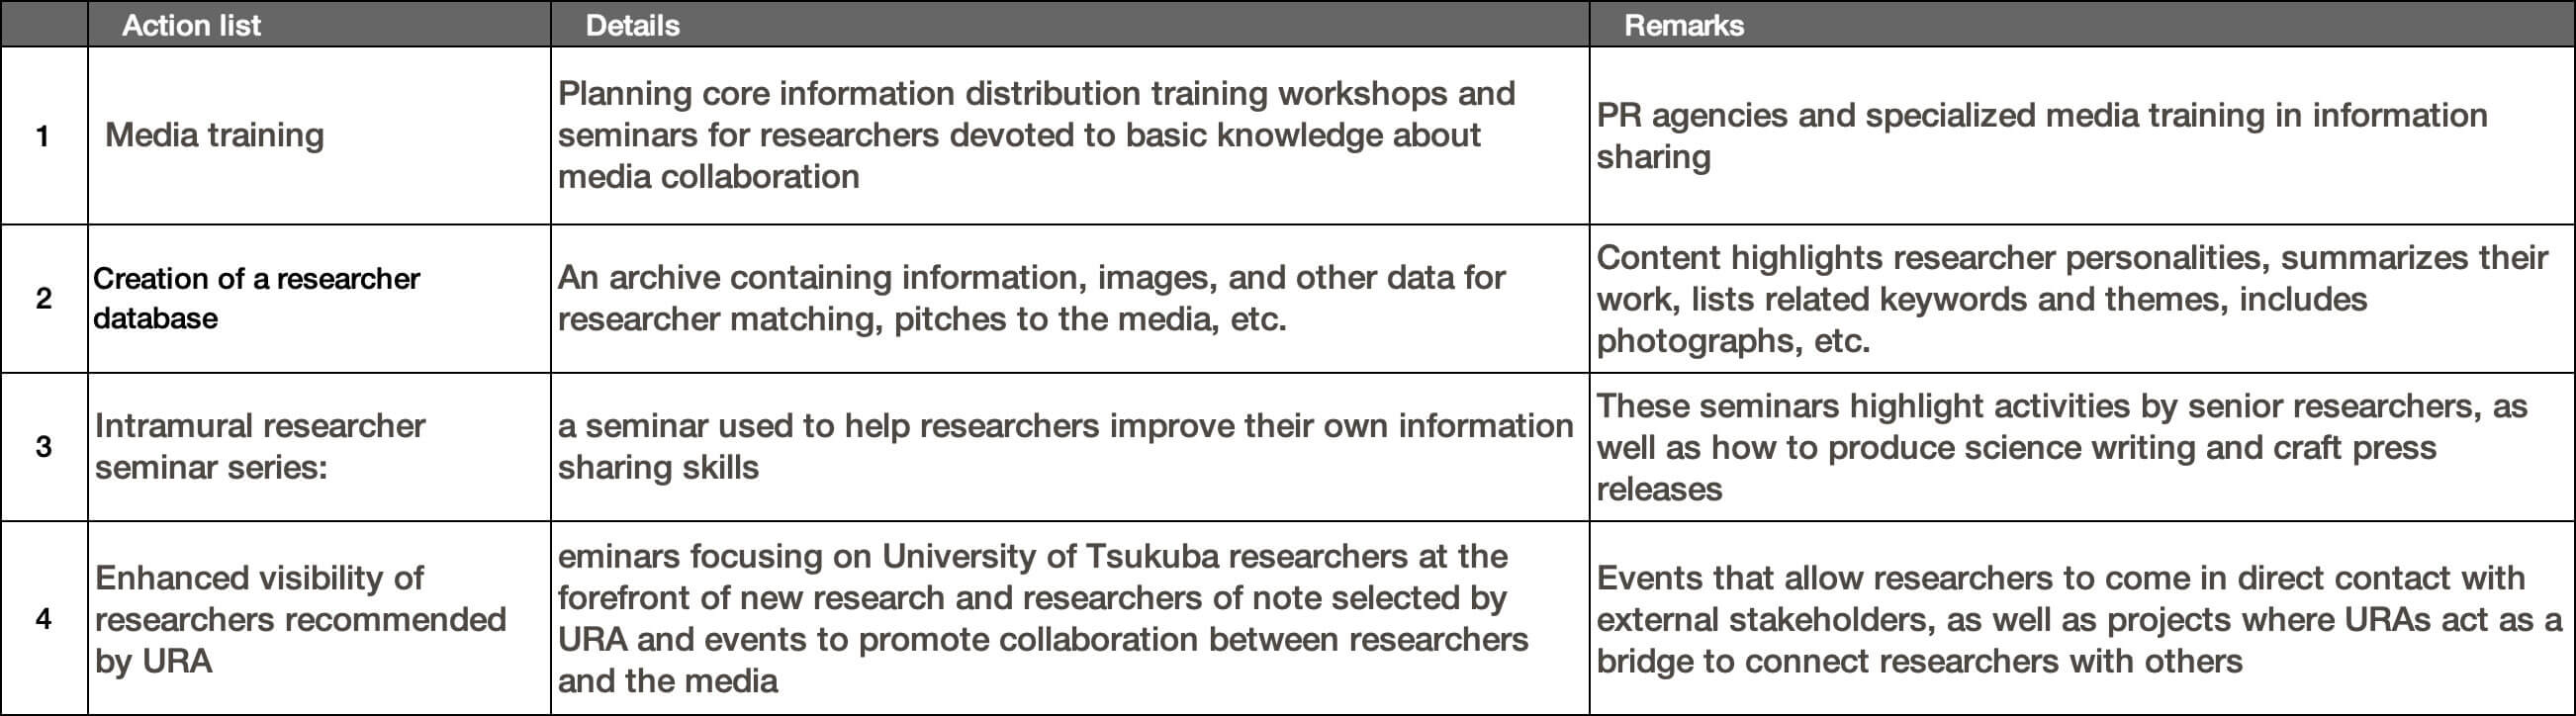 Proposed service for improved dissemination of research results by URA